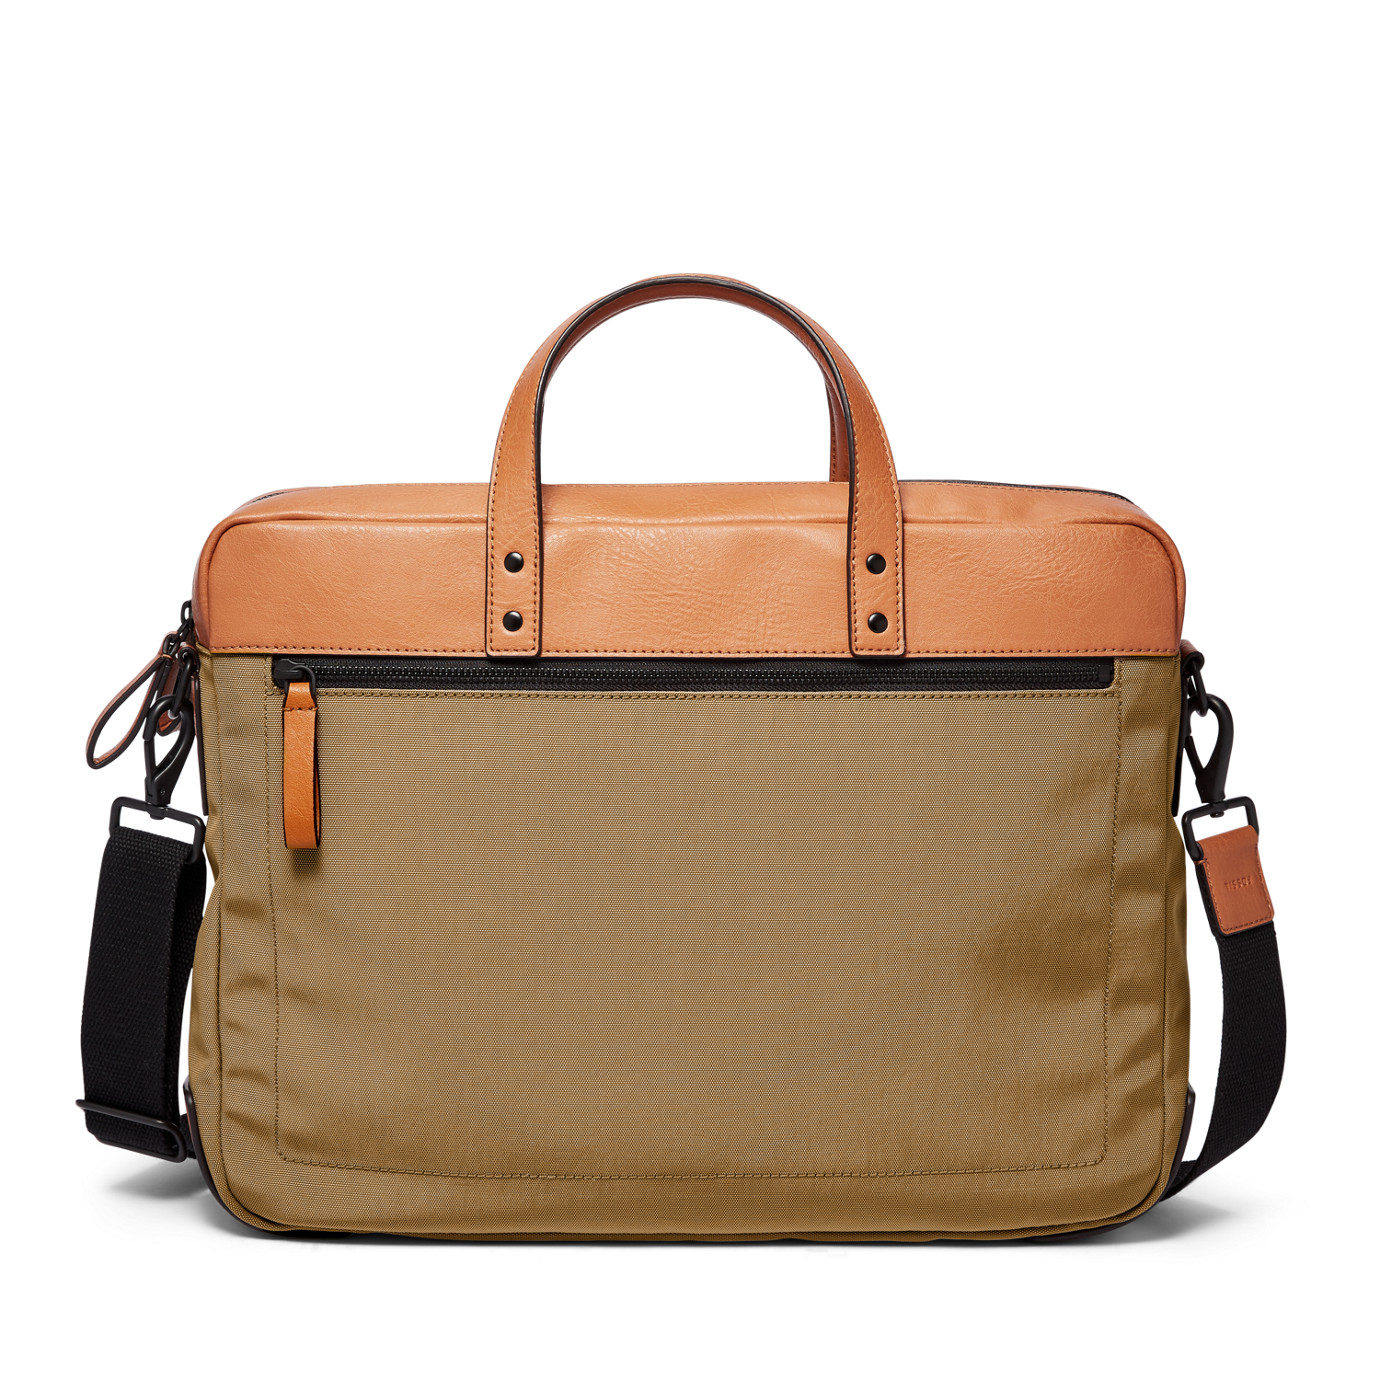 Haskell Double Zip Workbag